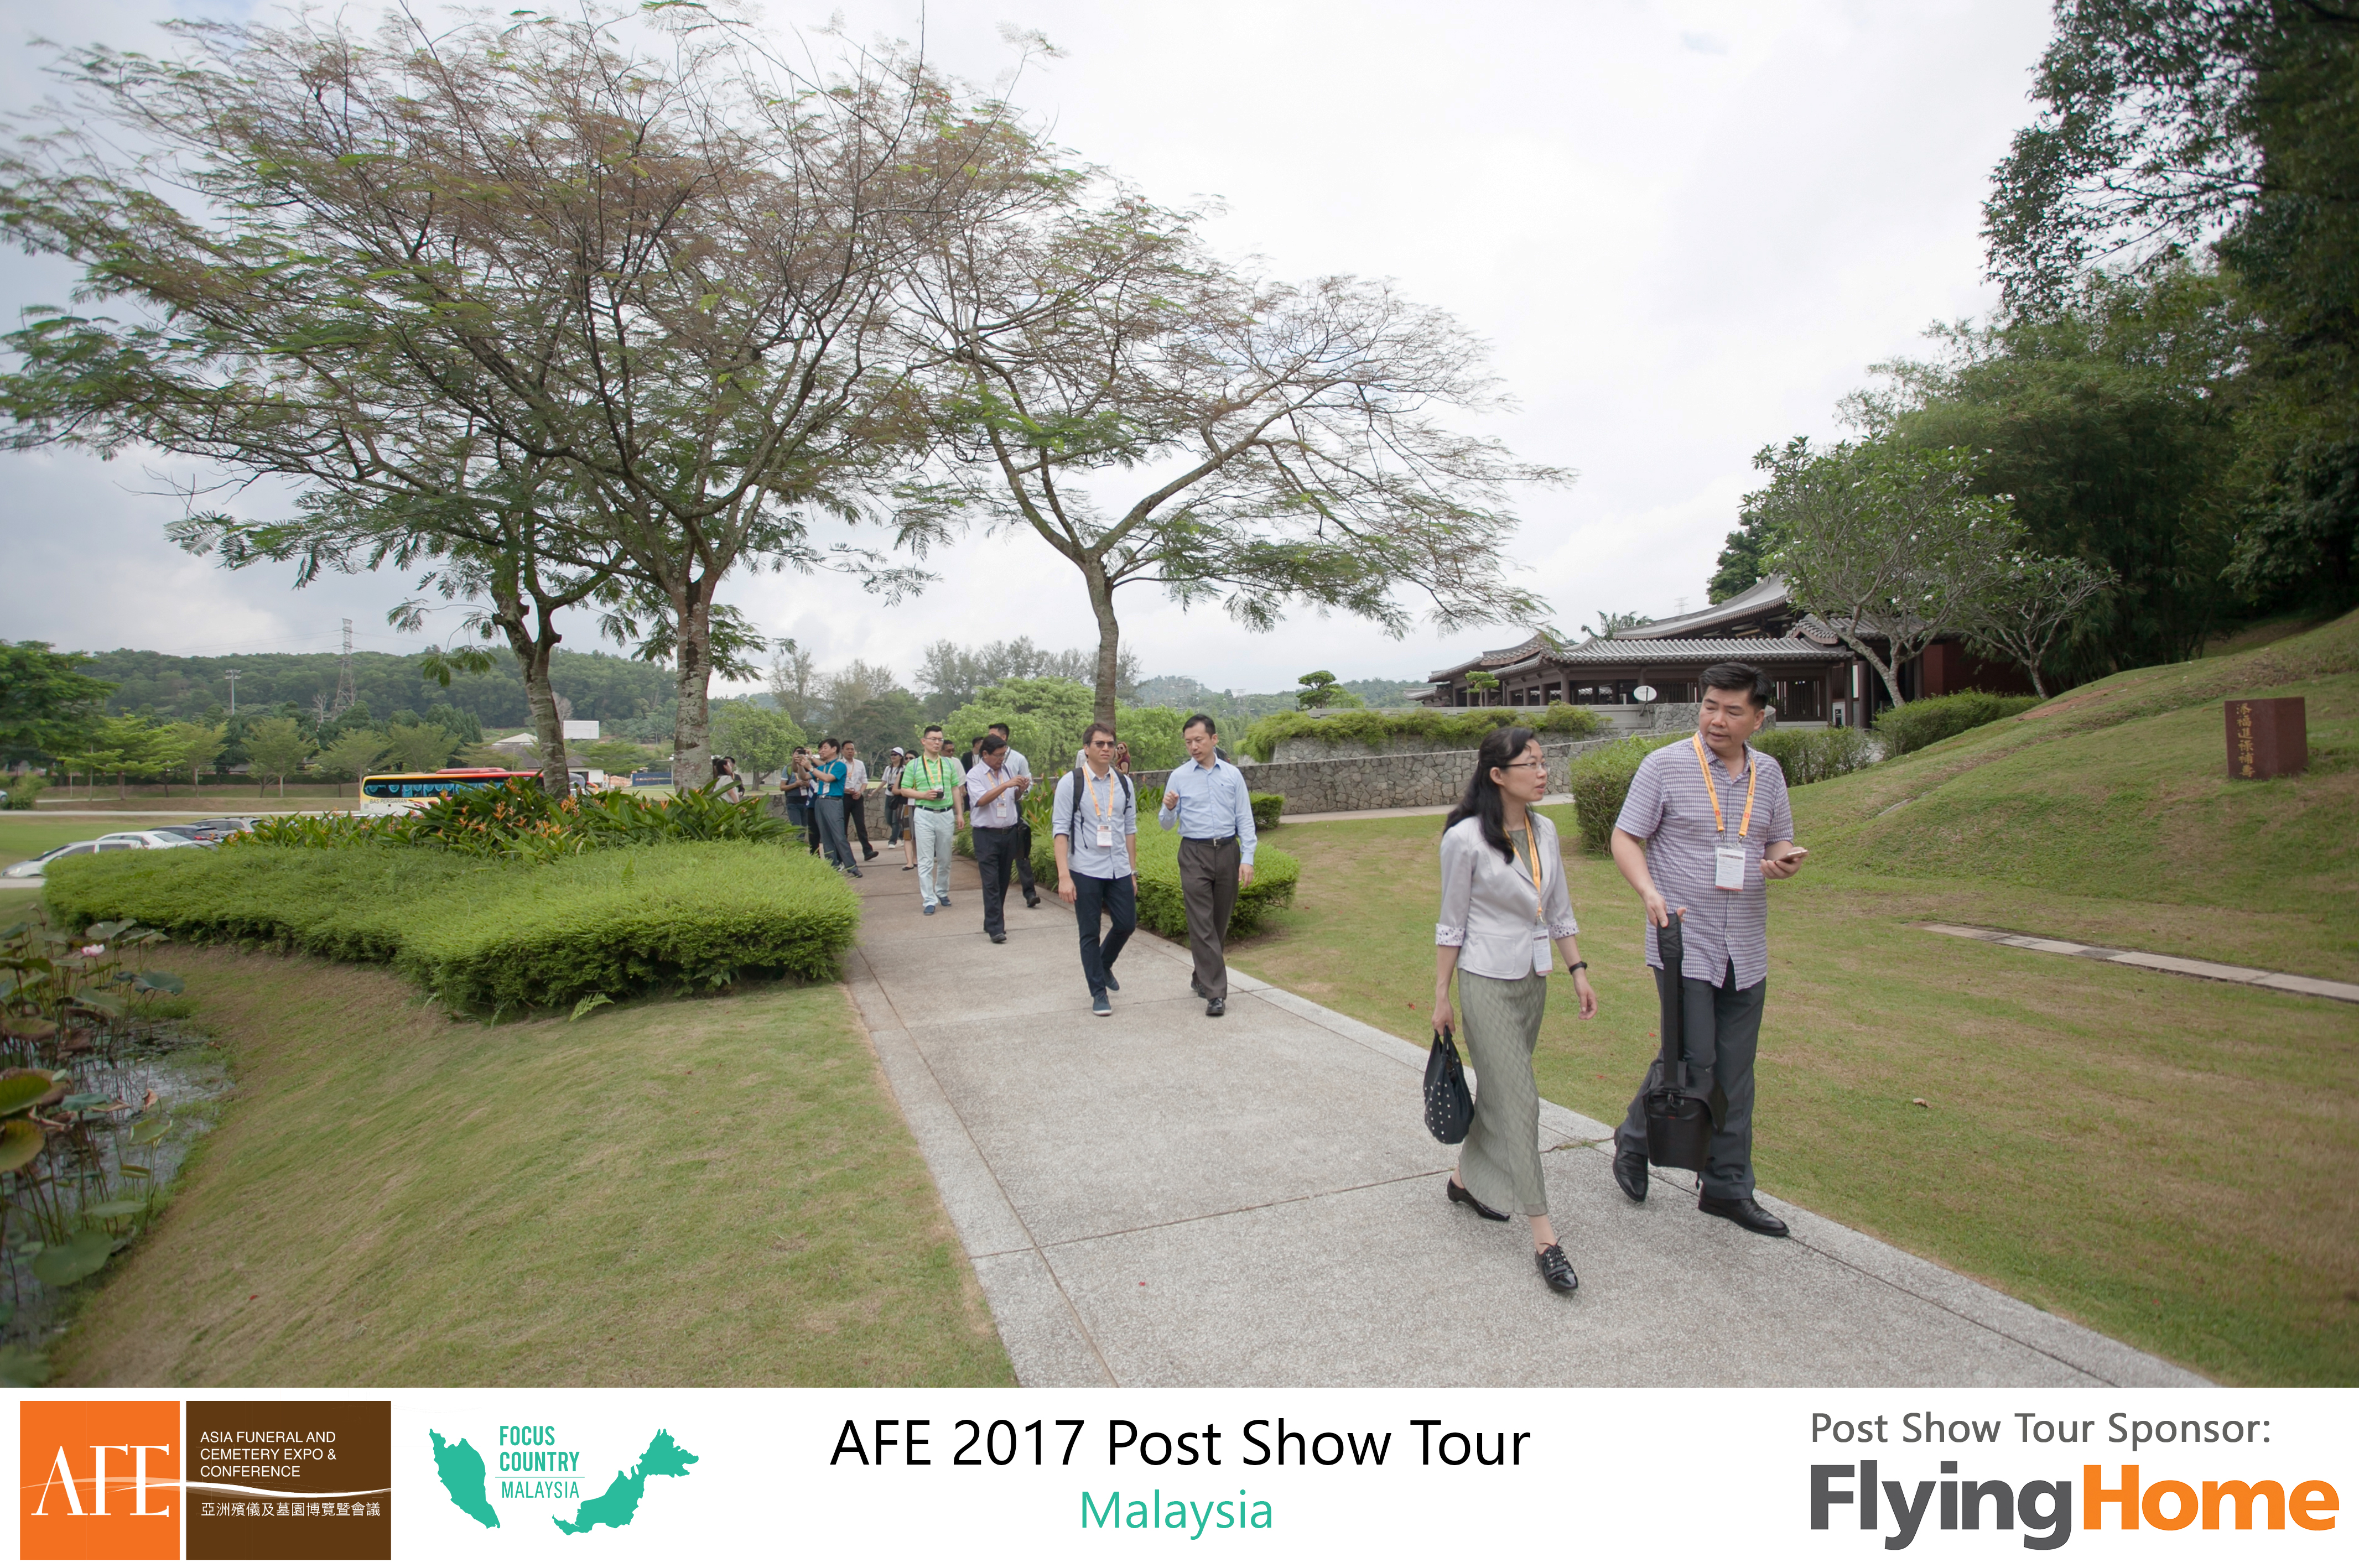 AFE Post Show Tour 2017 Day 3 -04